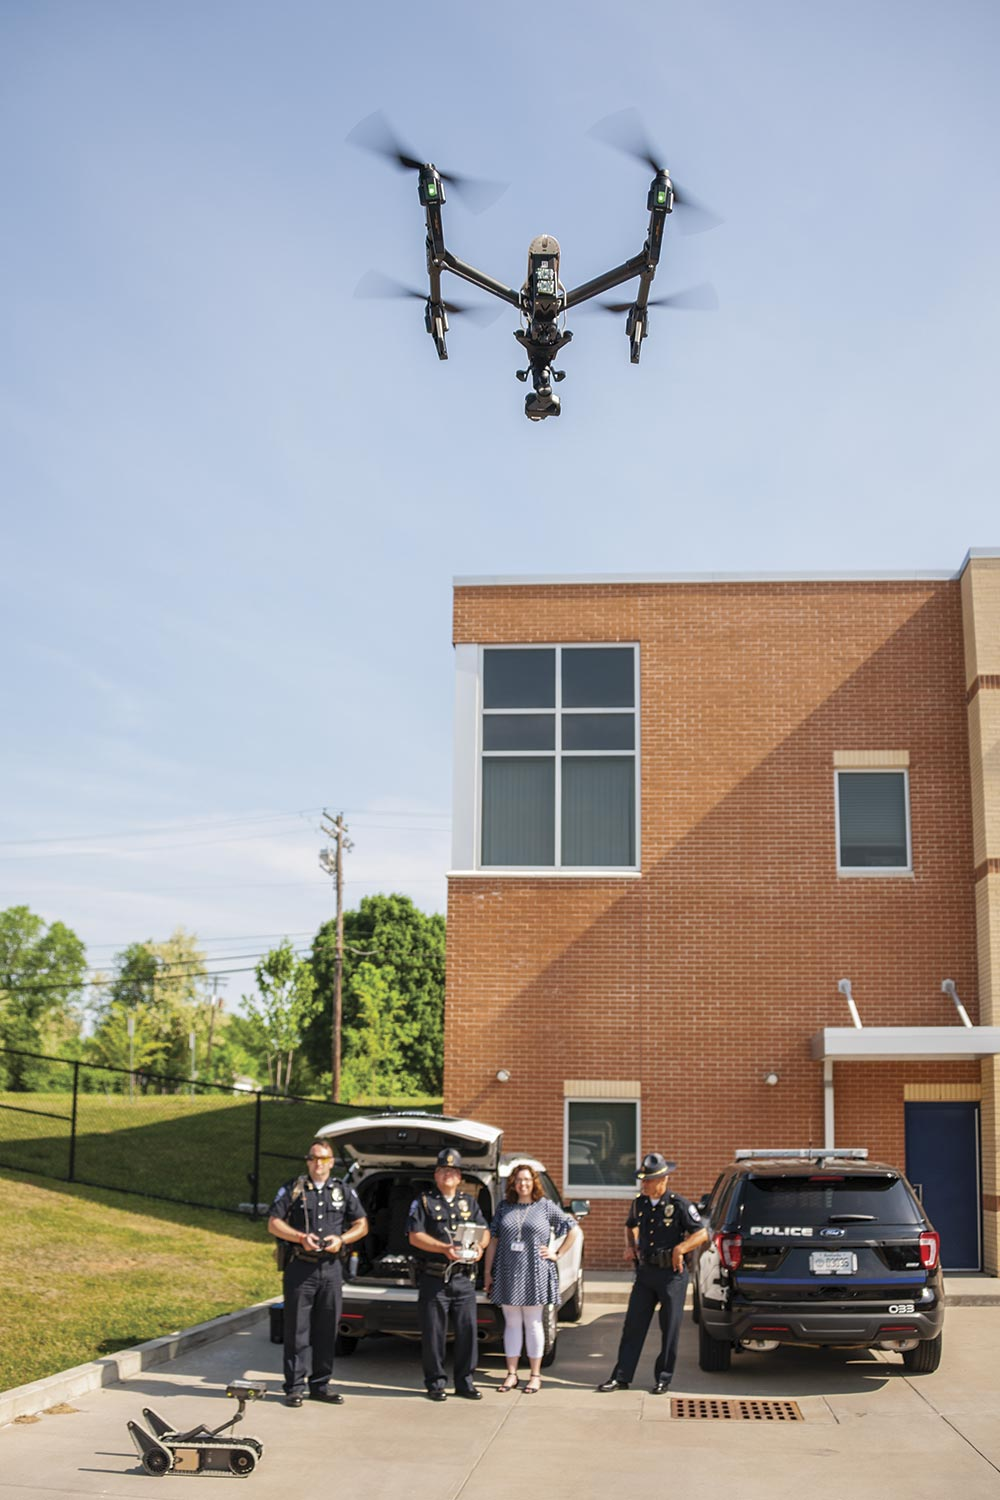 Georgetown Police Department purchased a drone in 2017. Officers trained and assigned to the department's aviation unit have used the equipment in law enforcement operations as well as for community relations events. (Photo by Jim Robertson)